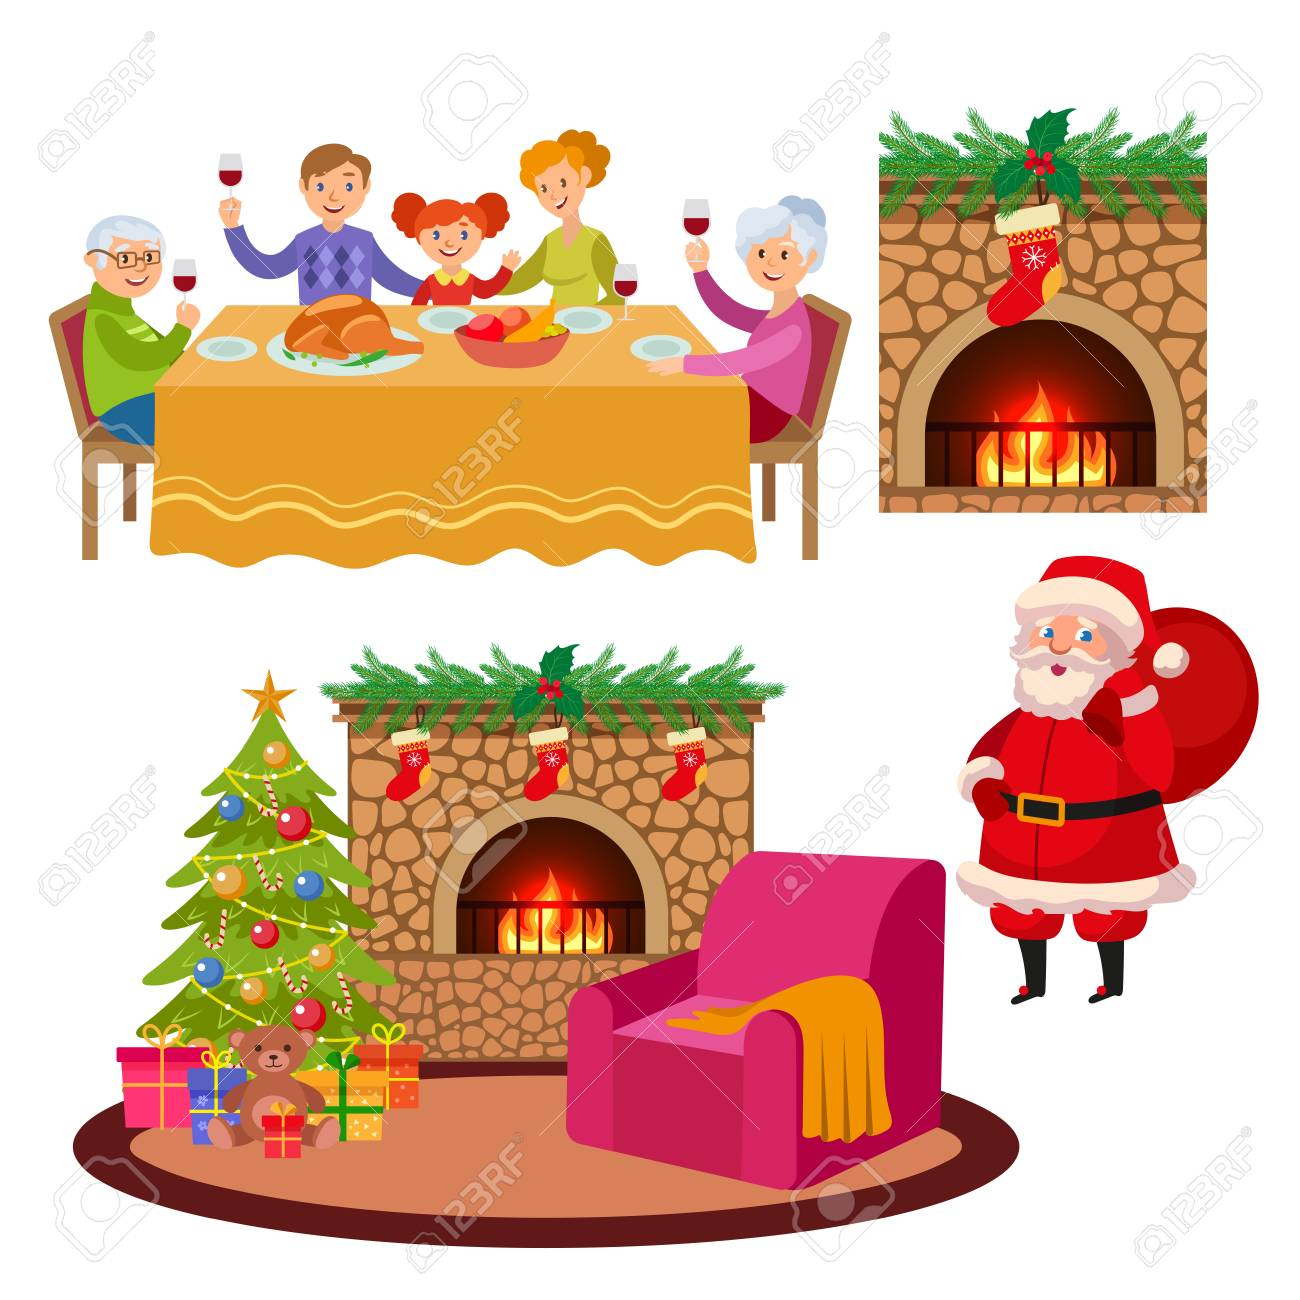 Christmas Fireplace Scene Clipart.Vector Christmas Holiday Scenes Set Santa Standing With Present